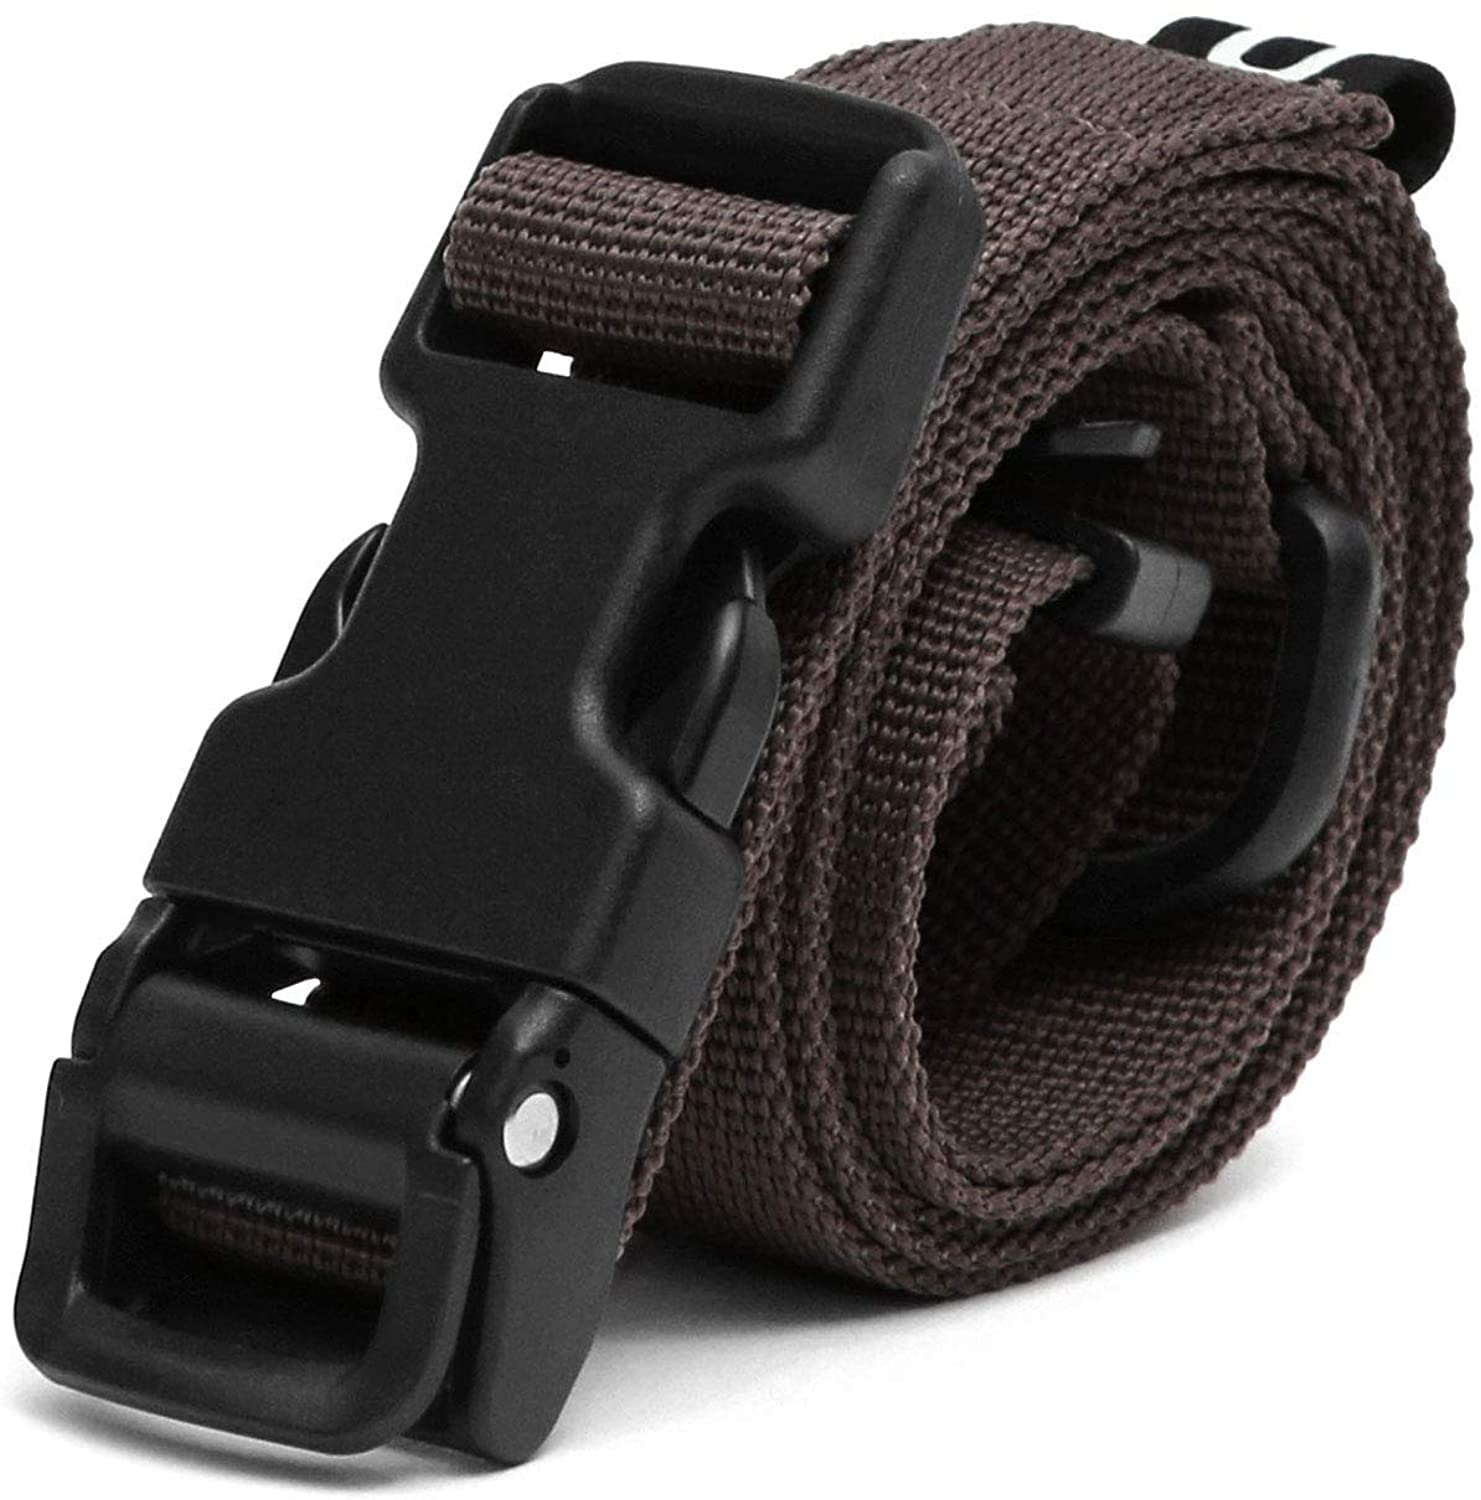 UNDERCONTROL Military Casual Tactical Web Belt - Army Durable Buckle Adjustable Quick and Easy Release Silm Belt